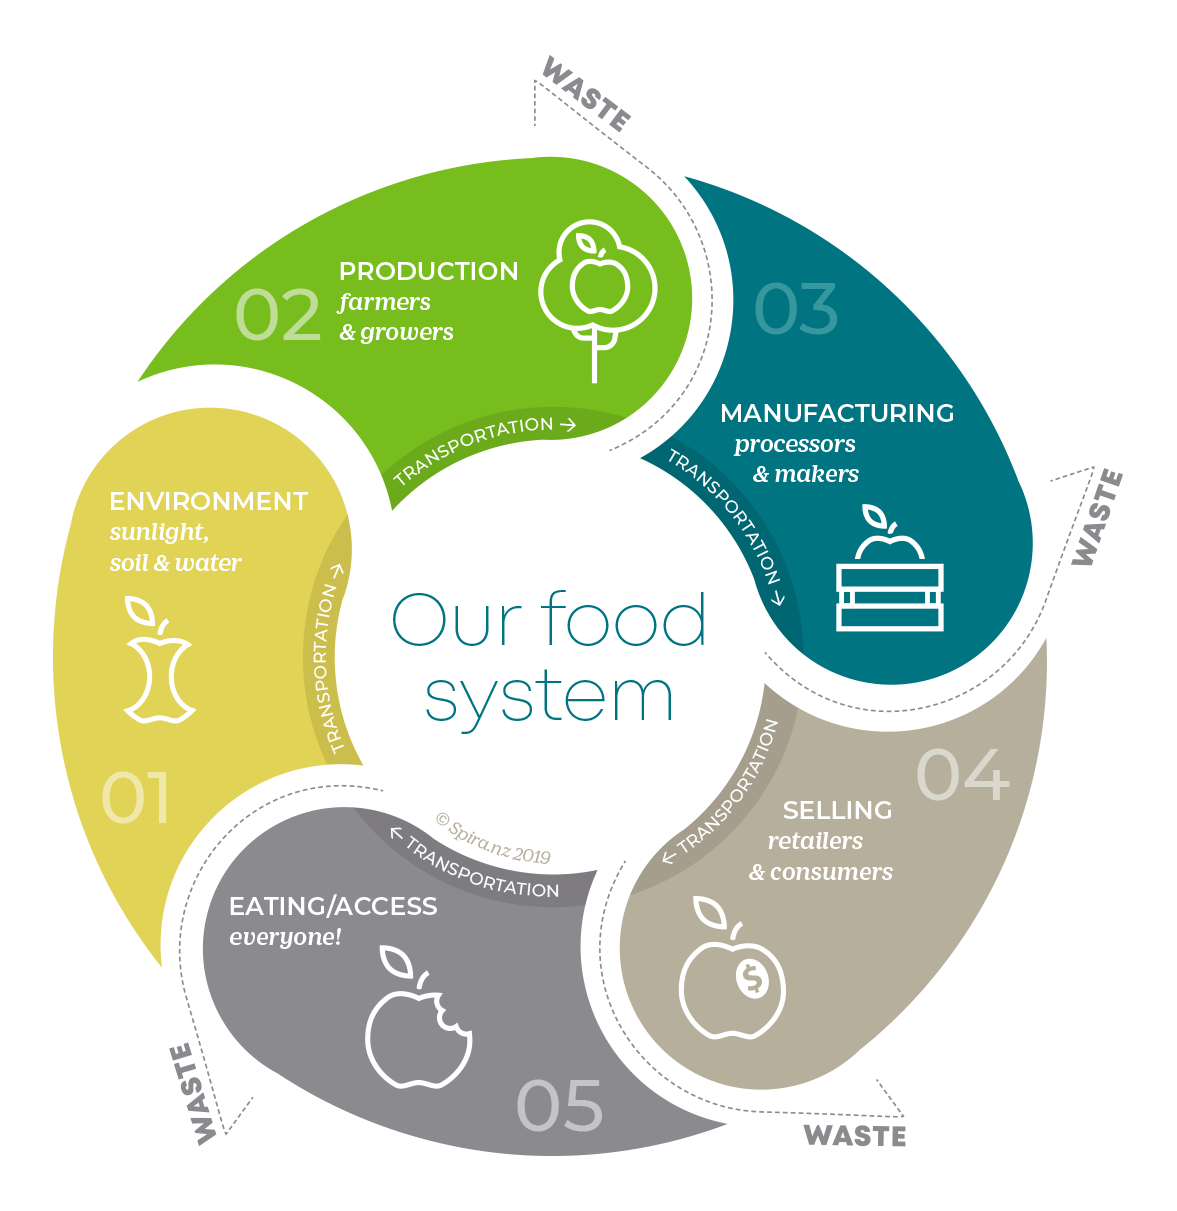 our food system - by spira. Where do you fit?